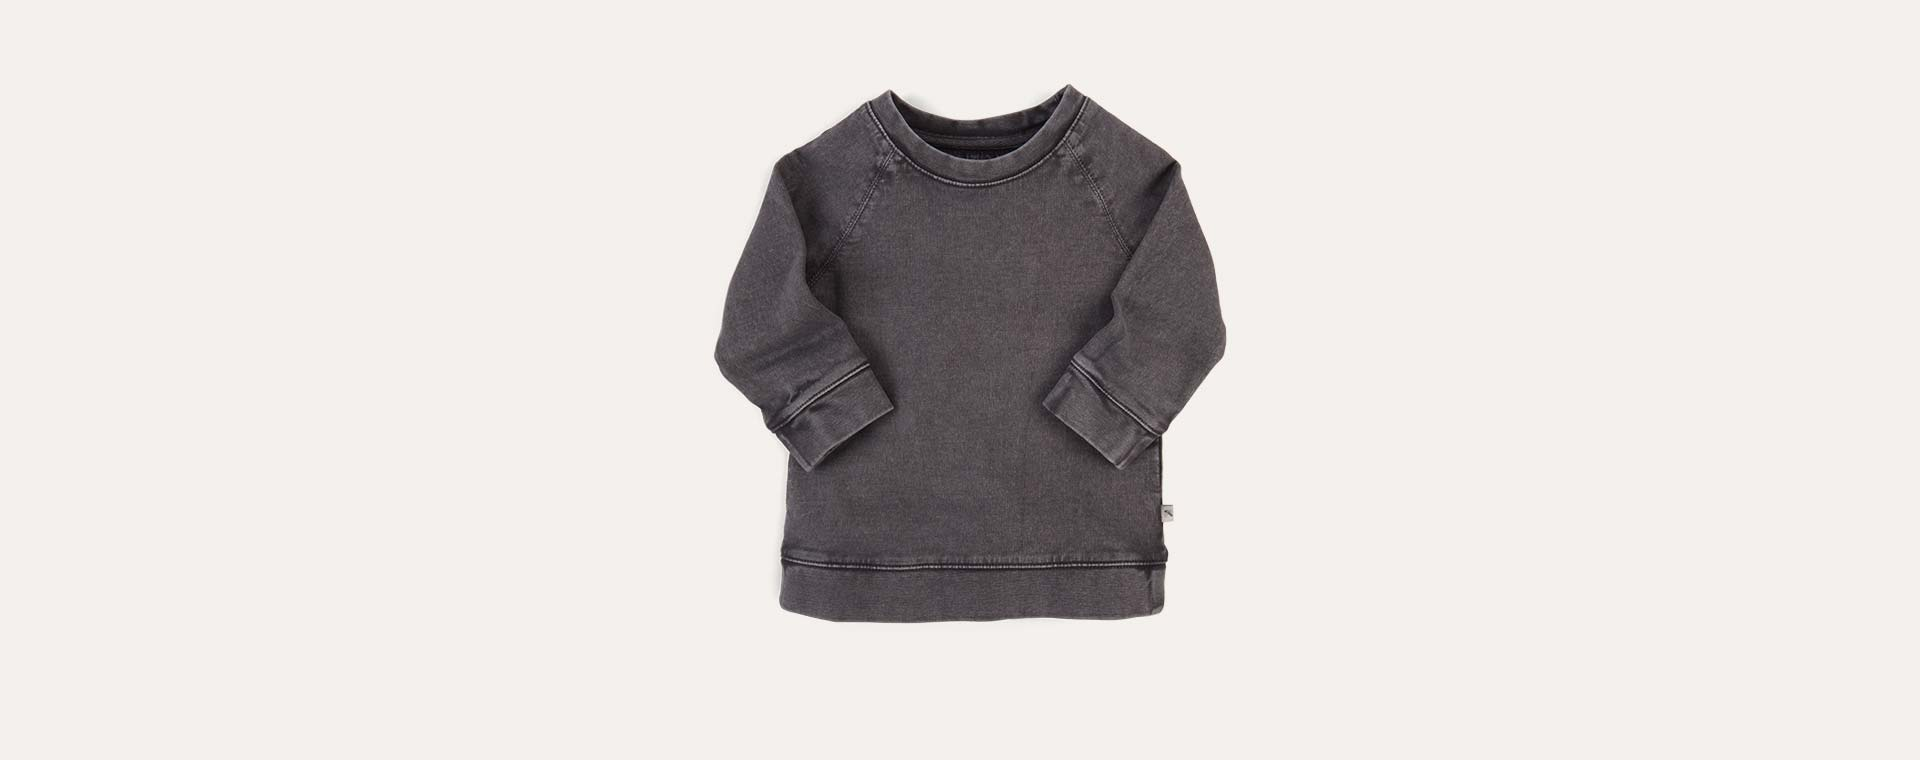 Slate KIDLY Label Washed Sweatshirt